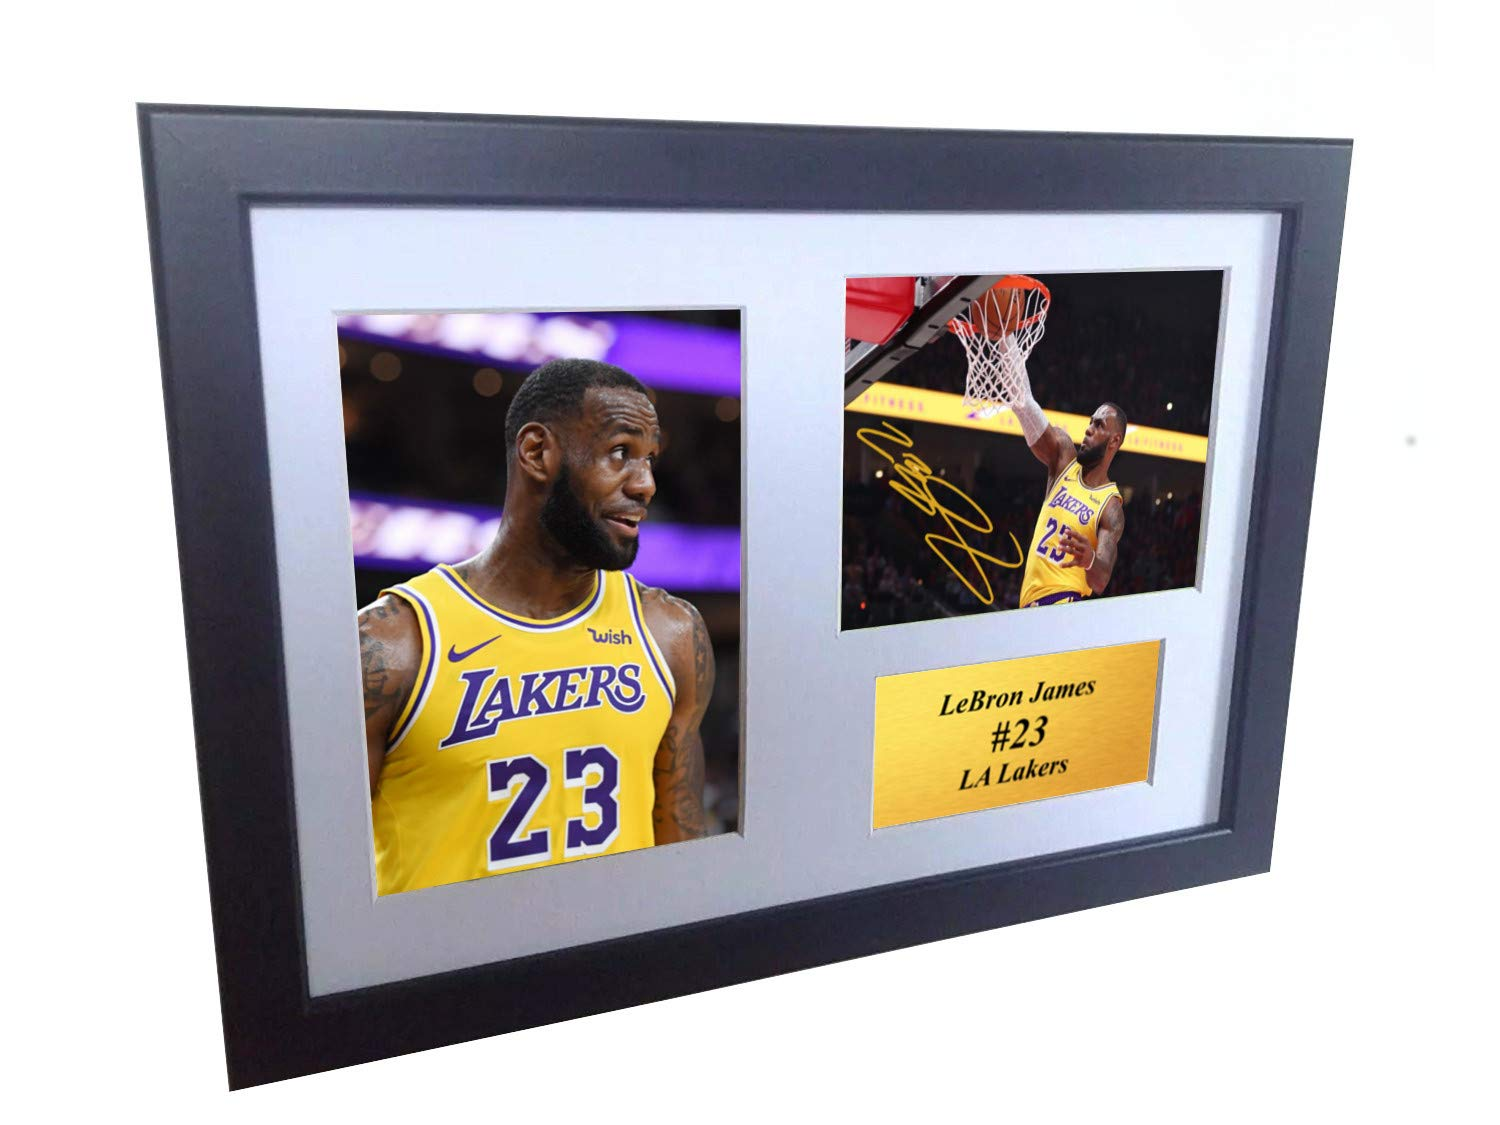 Kicks Lebron James - Marco de Fotos con autógrafo de Los Lakers ...